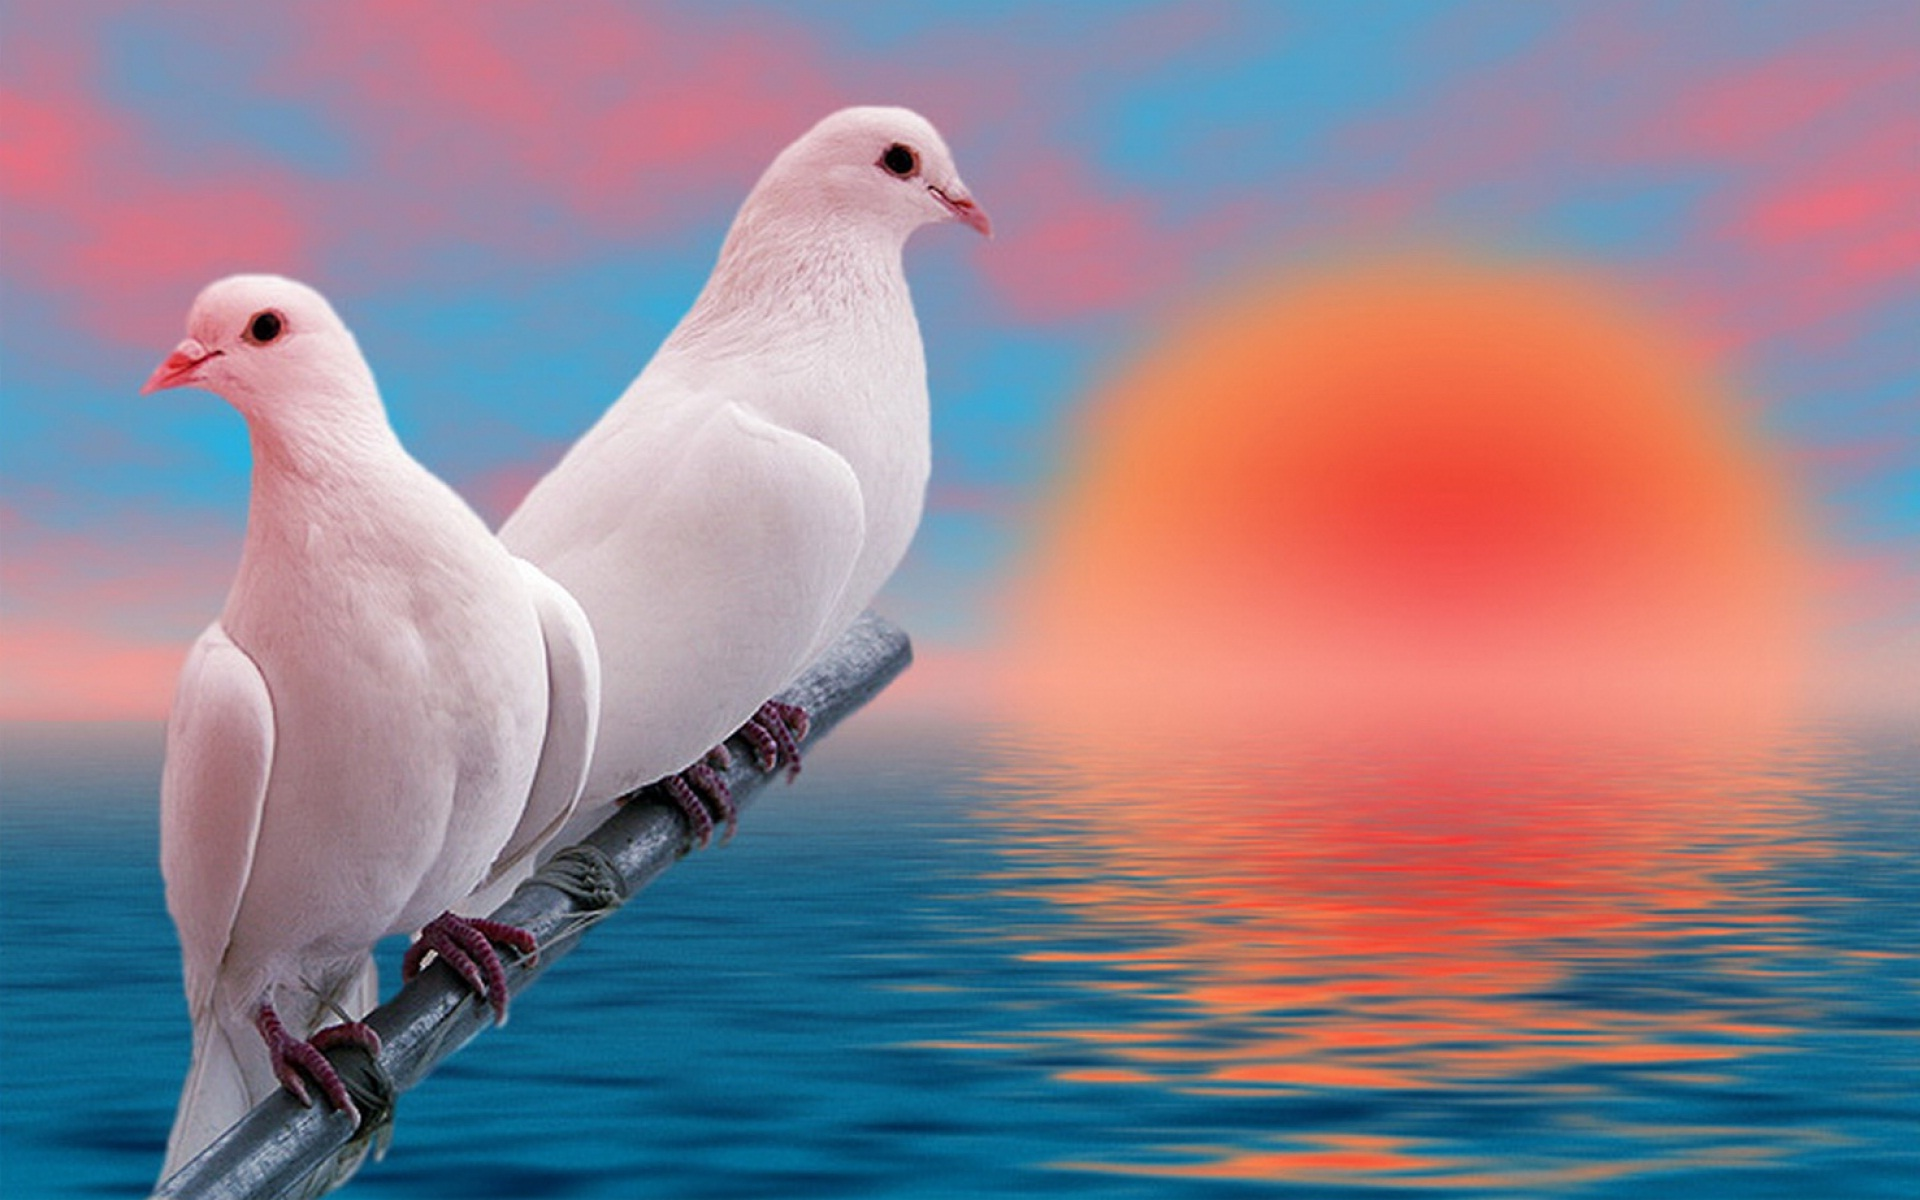 Pigeon Wallpapers Free Download